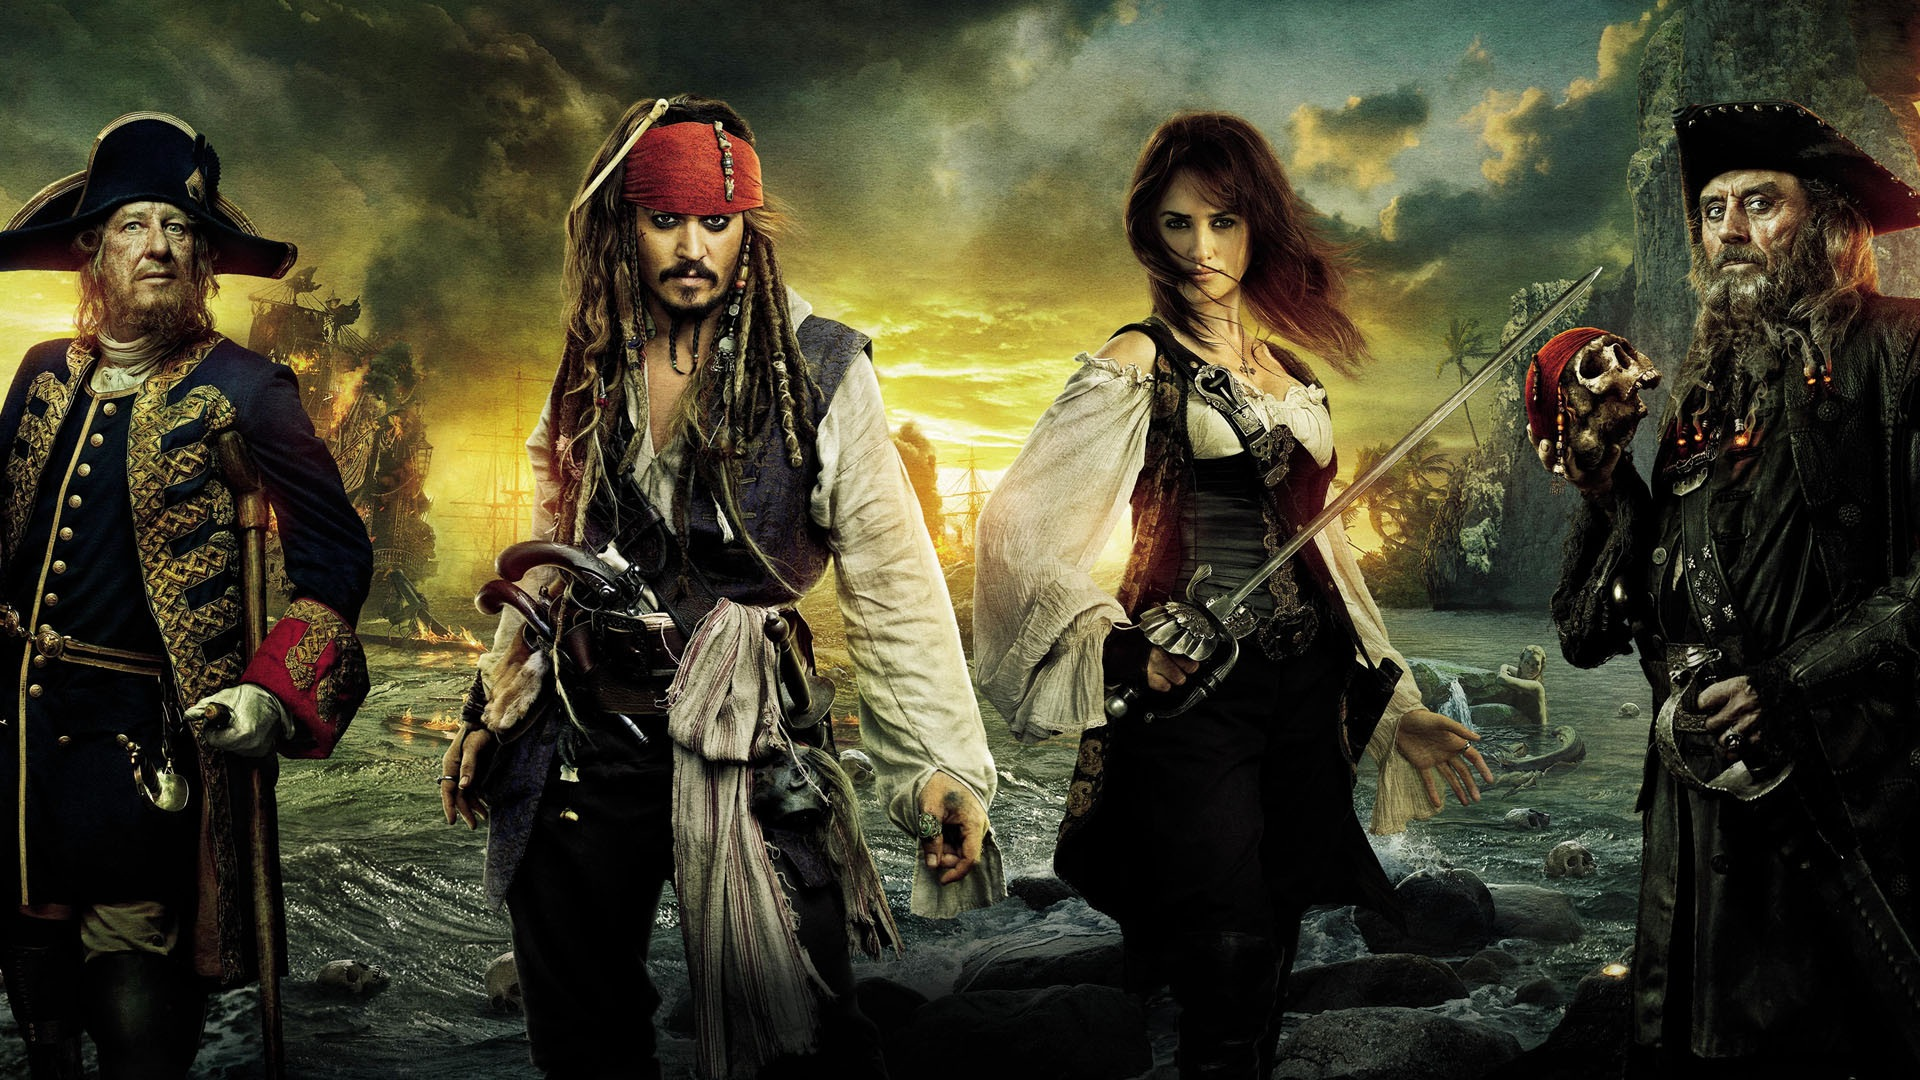 Pirates of the caribbean on stranger tides hd hintergrundbilder 1920x1080 full hd - Pirates of the caribbean images hd ...